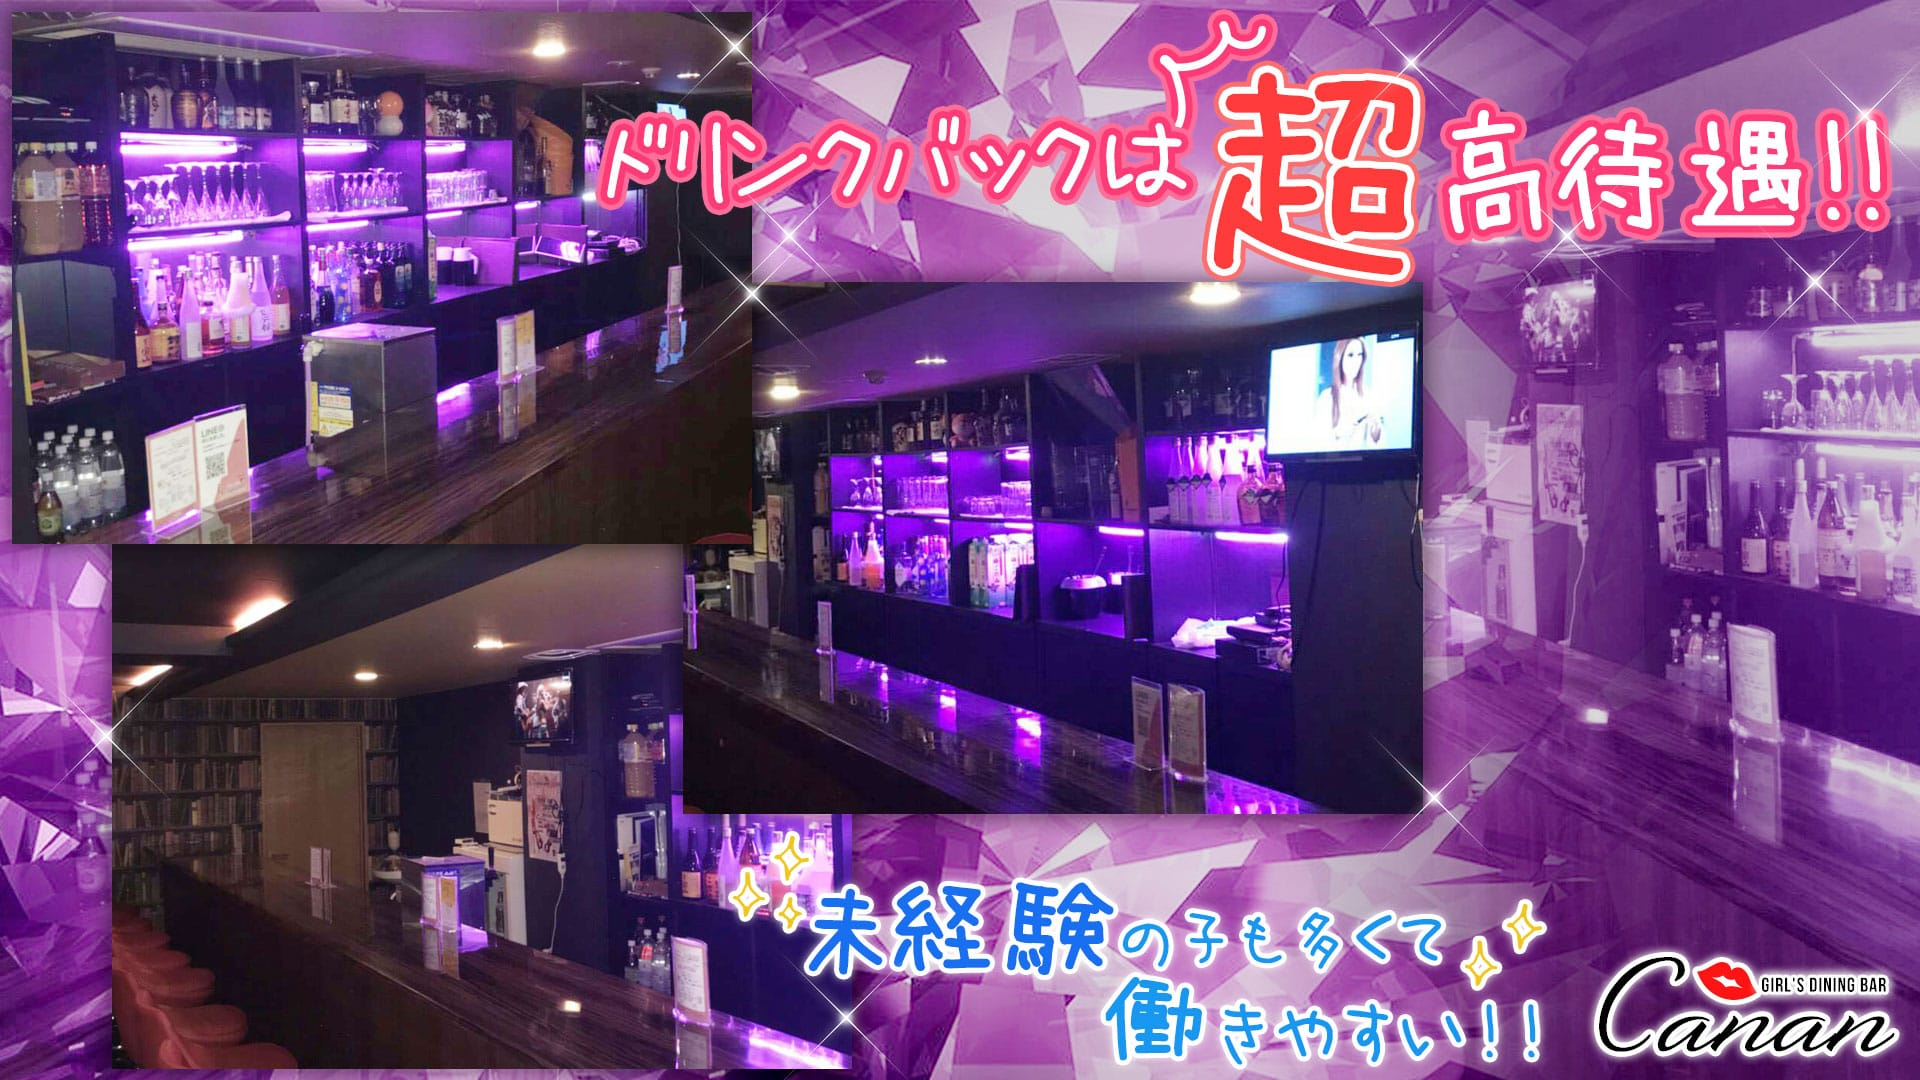 GIRL'S DINING BAR Canan(カナン)神楽坂店 TOP画像